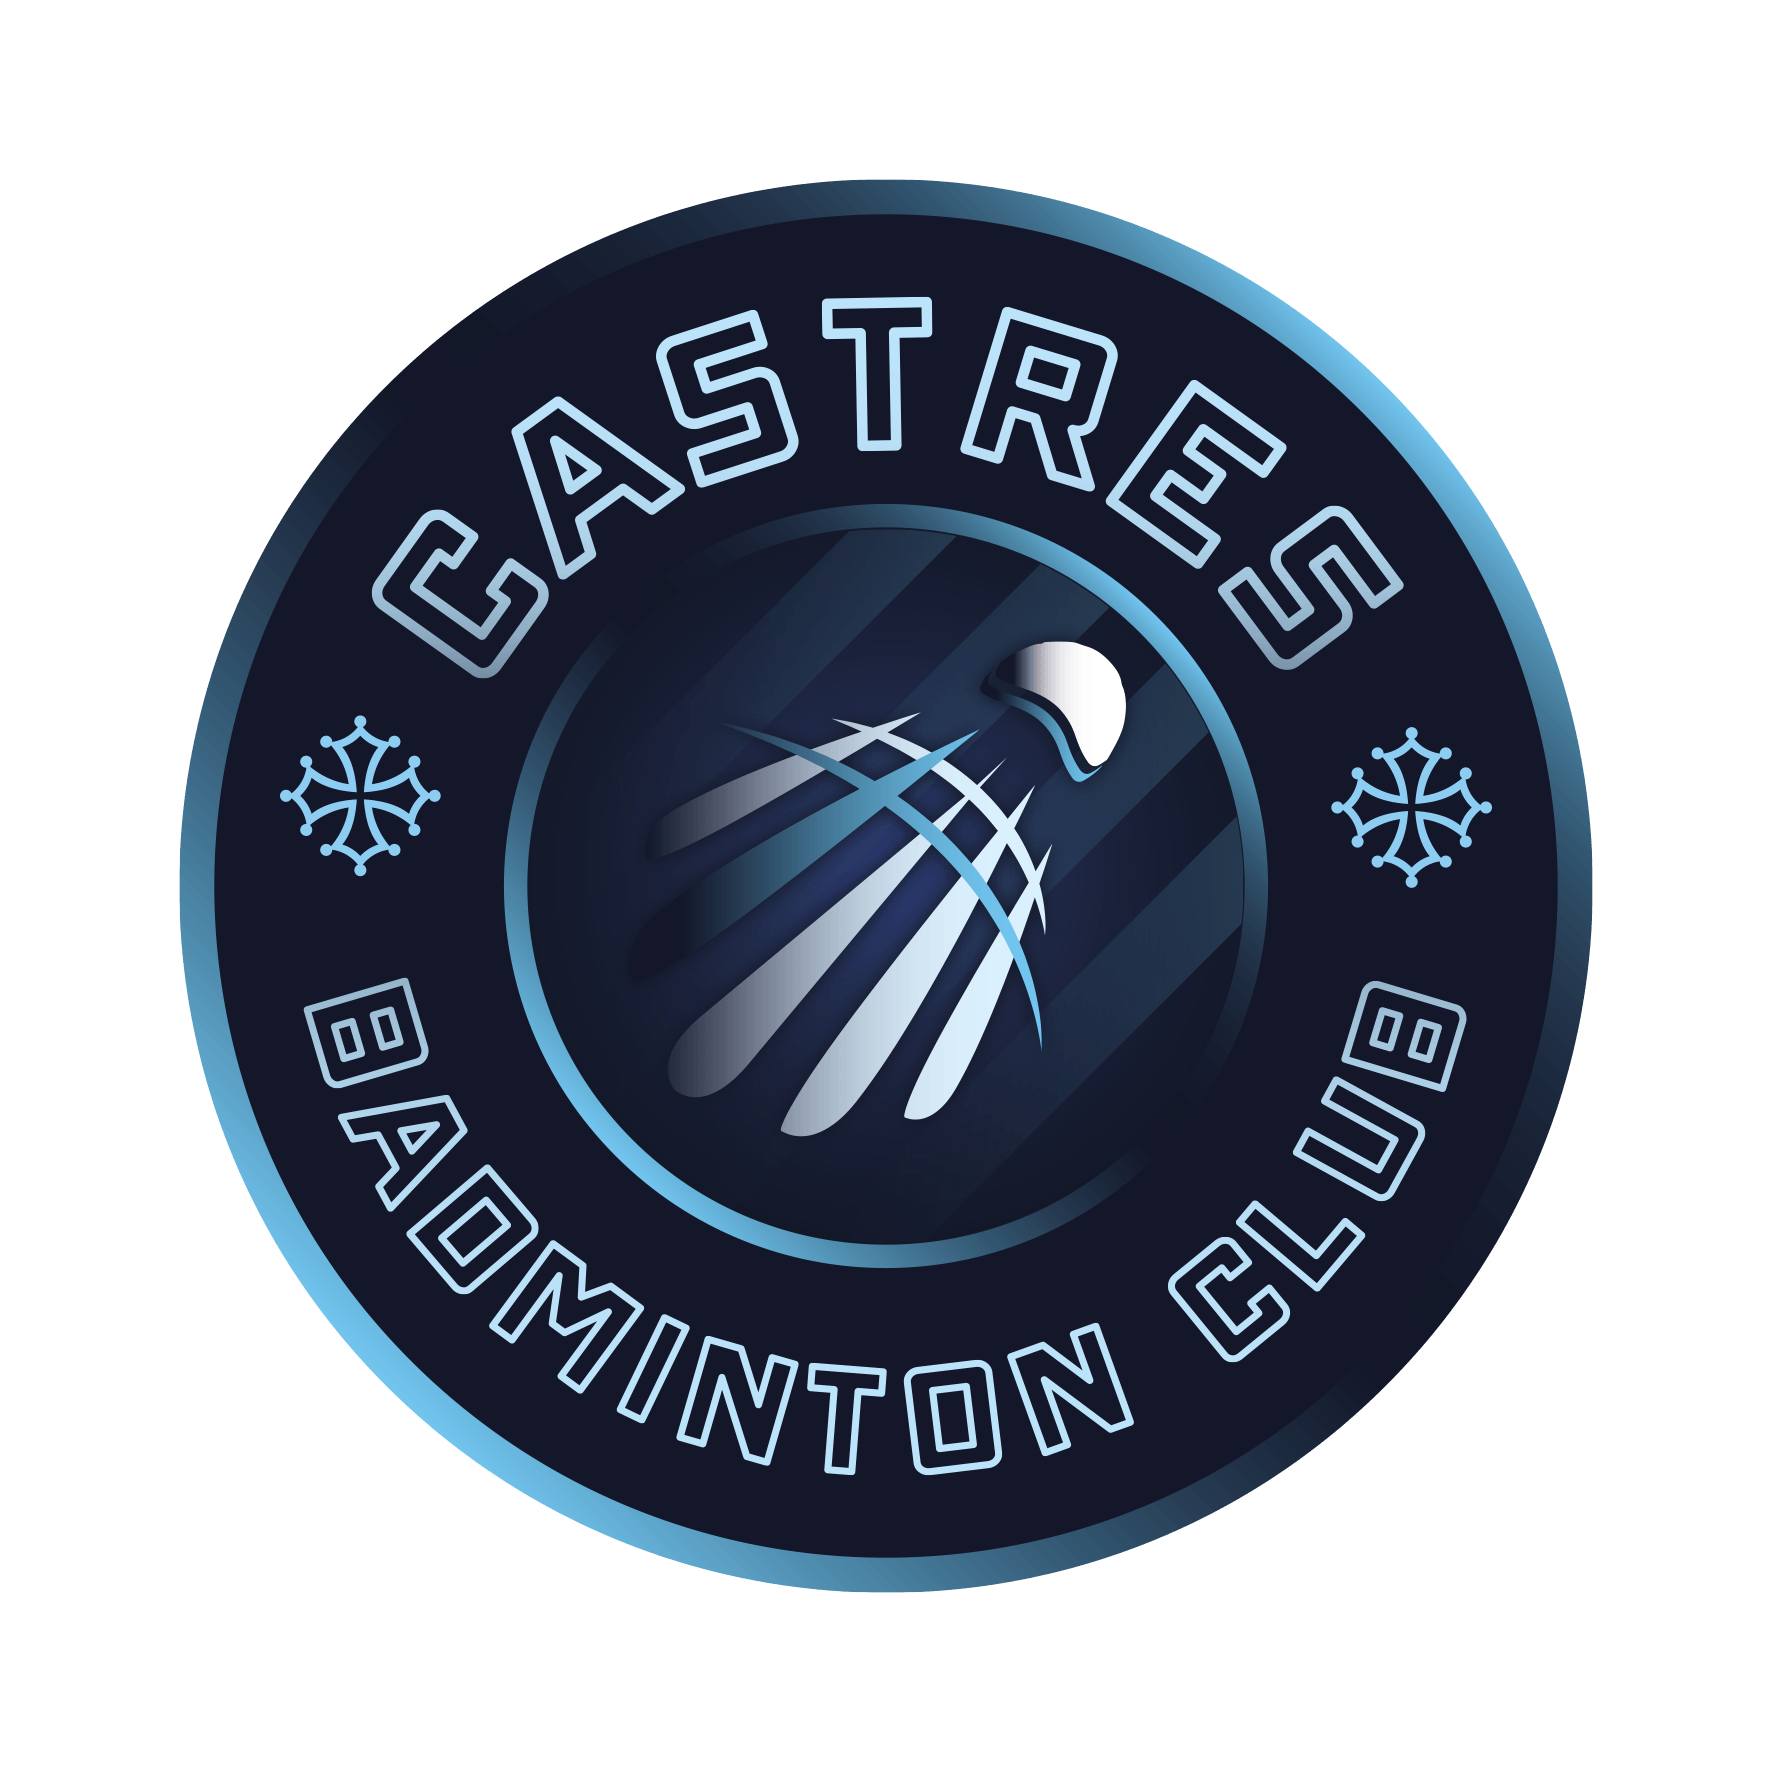 Castres Badminton Club